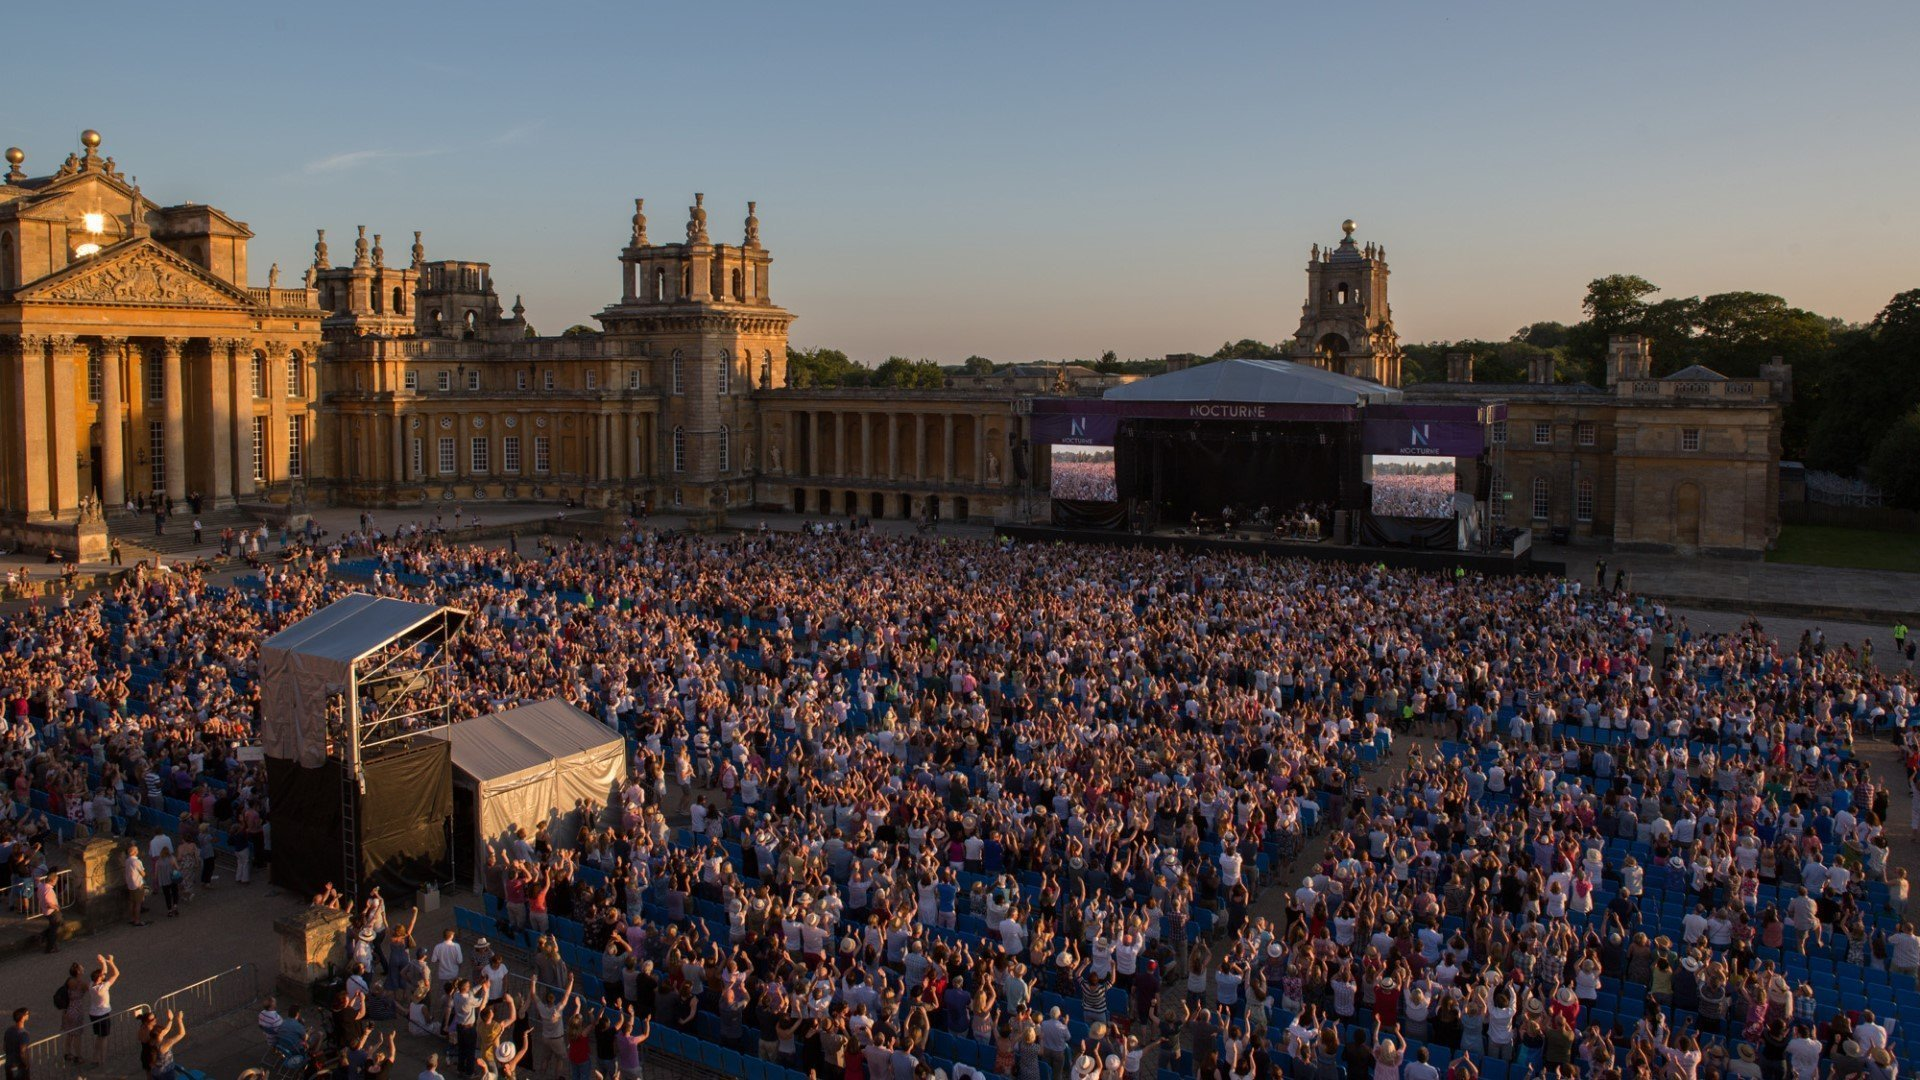 Nocturne Live 2021 at Blenheim Palace cancelled